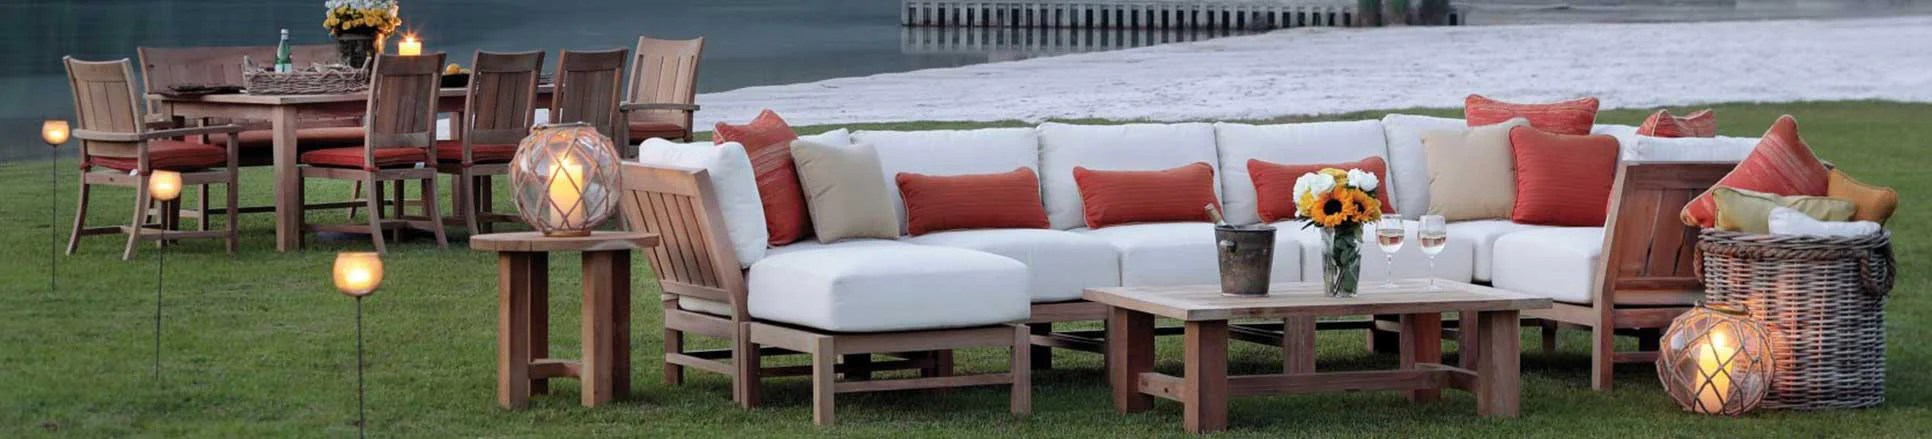 san diego patio furniture outlet patio